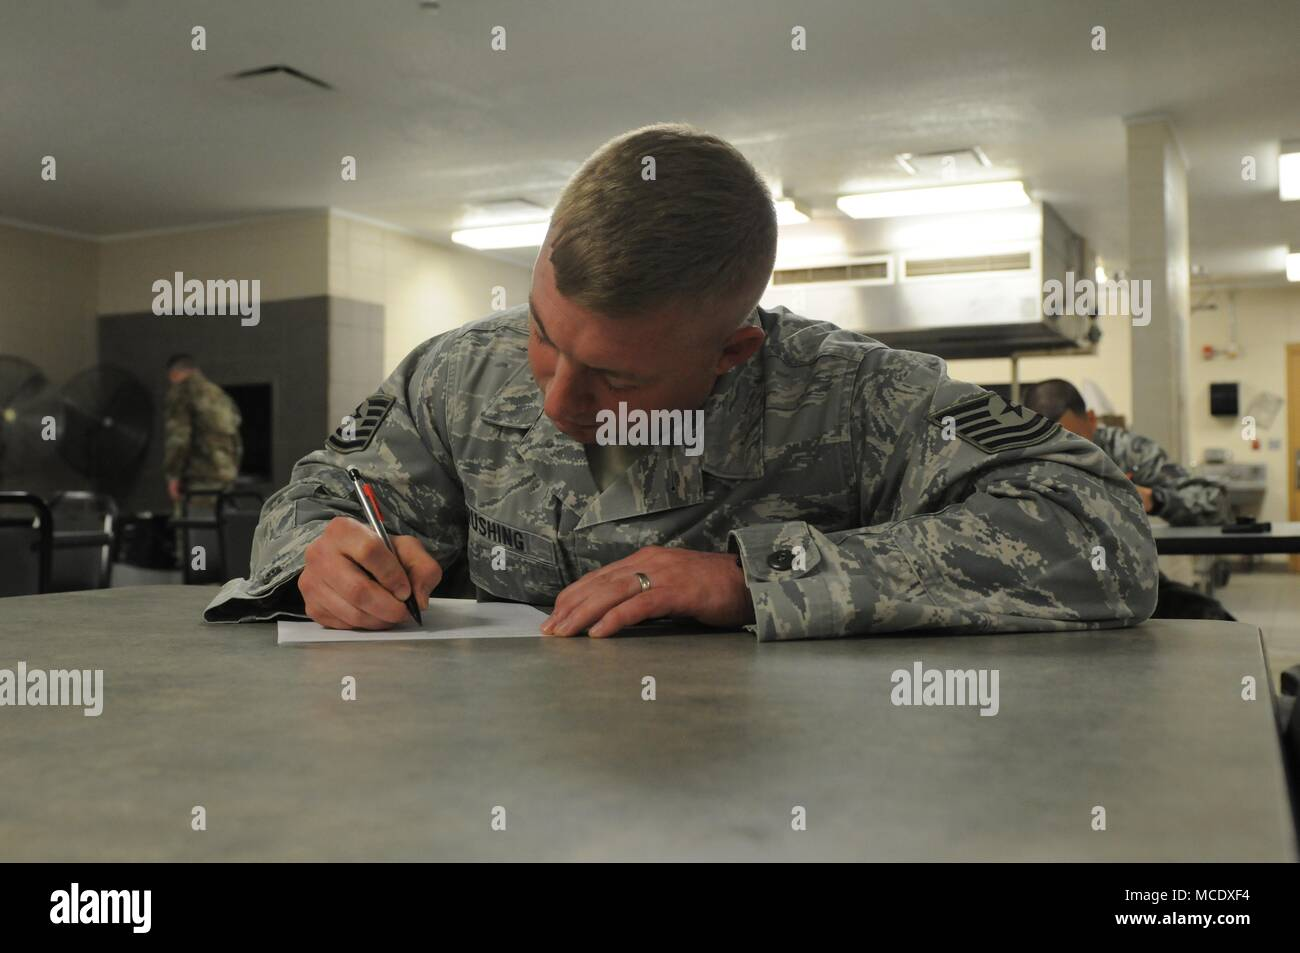 Mississippi Air National Guard Tech Sgt. Thomas D. Rushing, 186th Security Forces Squadron, takes an exam during the opening event of the Mississippi Best Warrior Competition Feb. 26, 2018. The Best Warrior Competition highlights the various skills and expertise our Soldiers and Airmen contribute to the National Guard team and our all-volunteer force. (U.S. National Guard photo by Chelsy Ables) - Stock Image